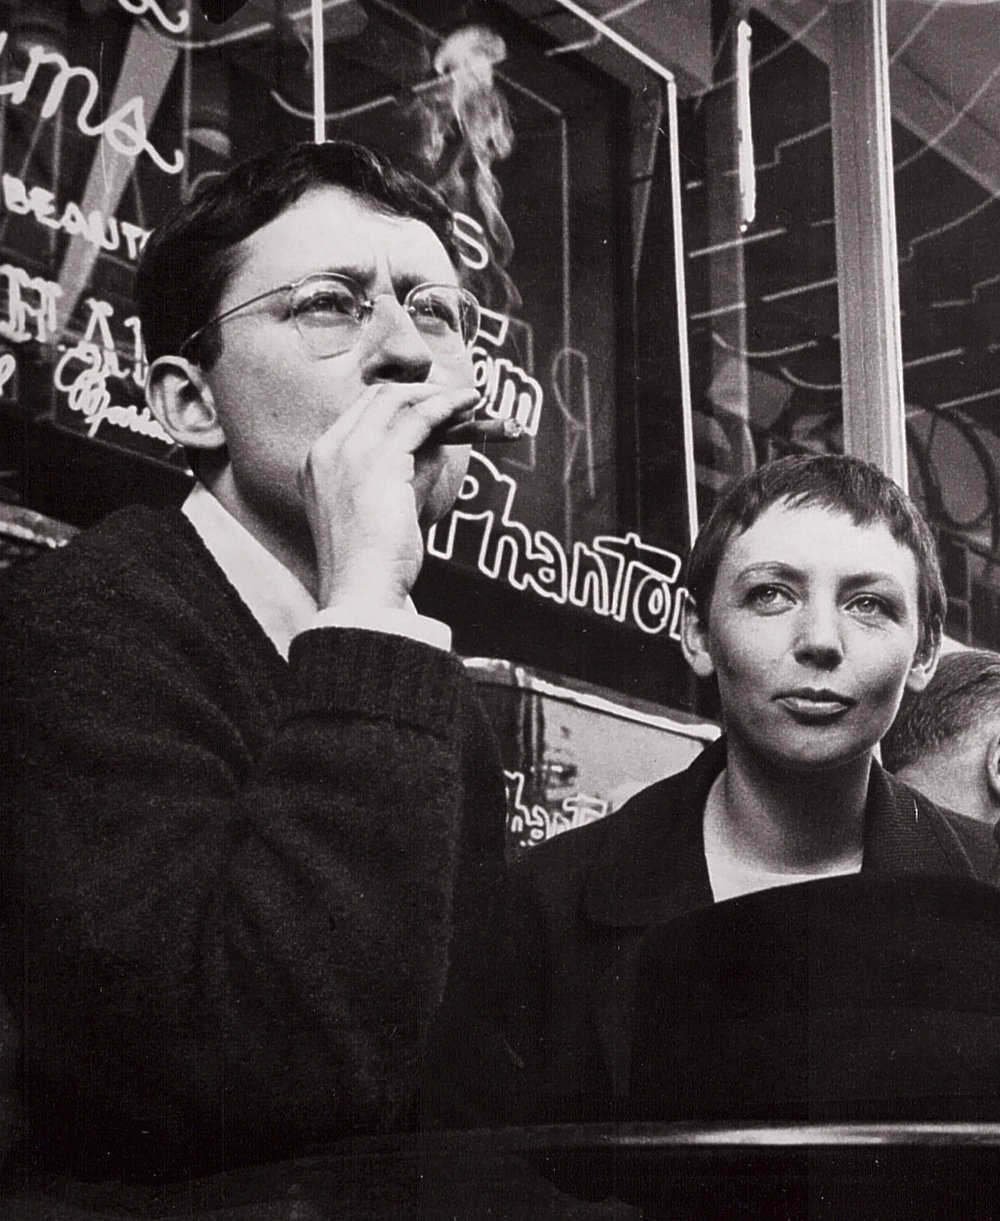 Photograph of Guy Debord and Michèle Bernstein.